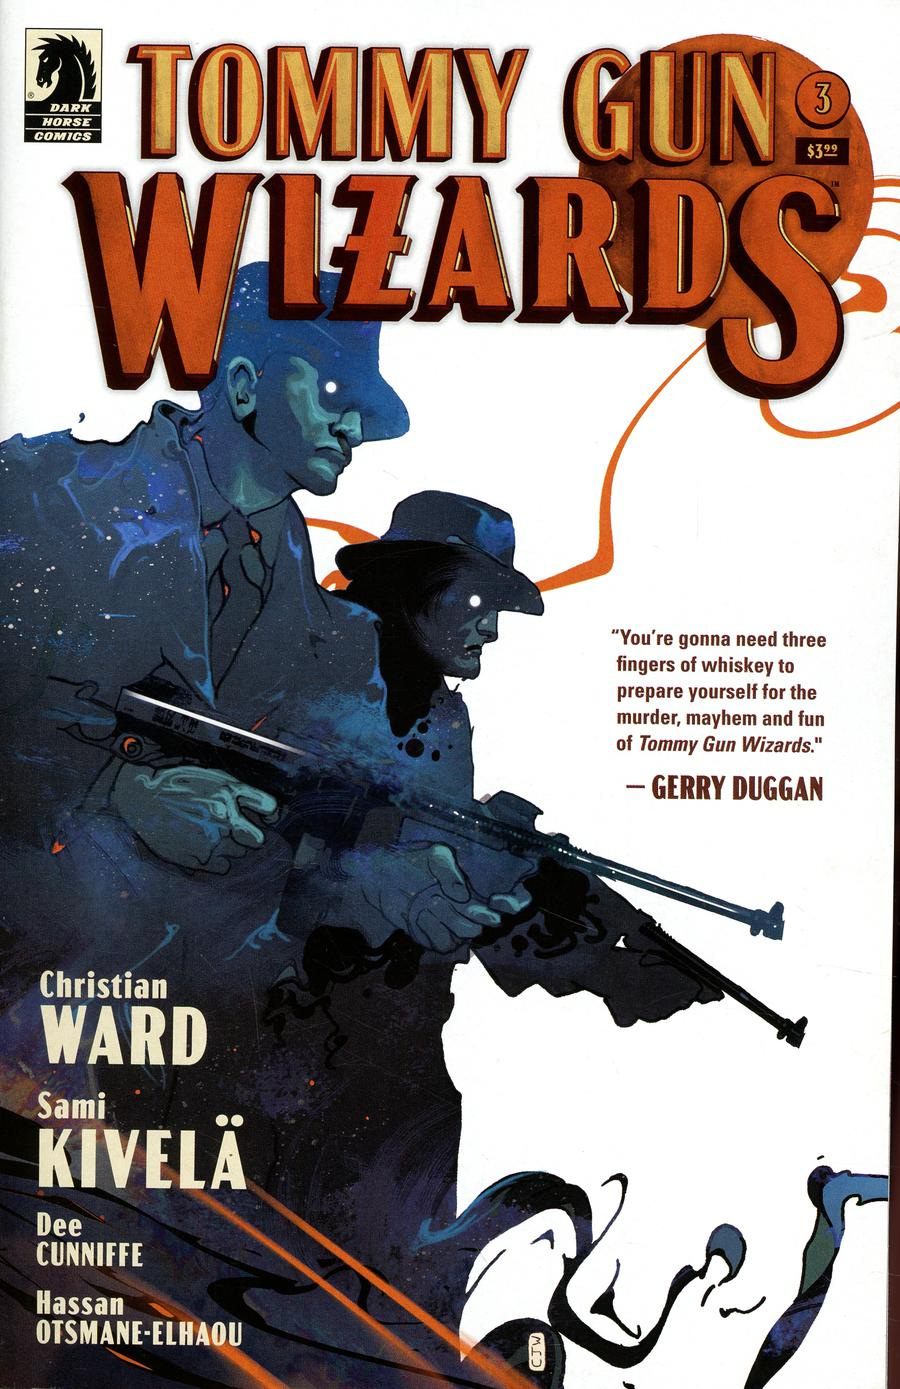 Tommy Gun Wizards #3 (2019)